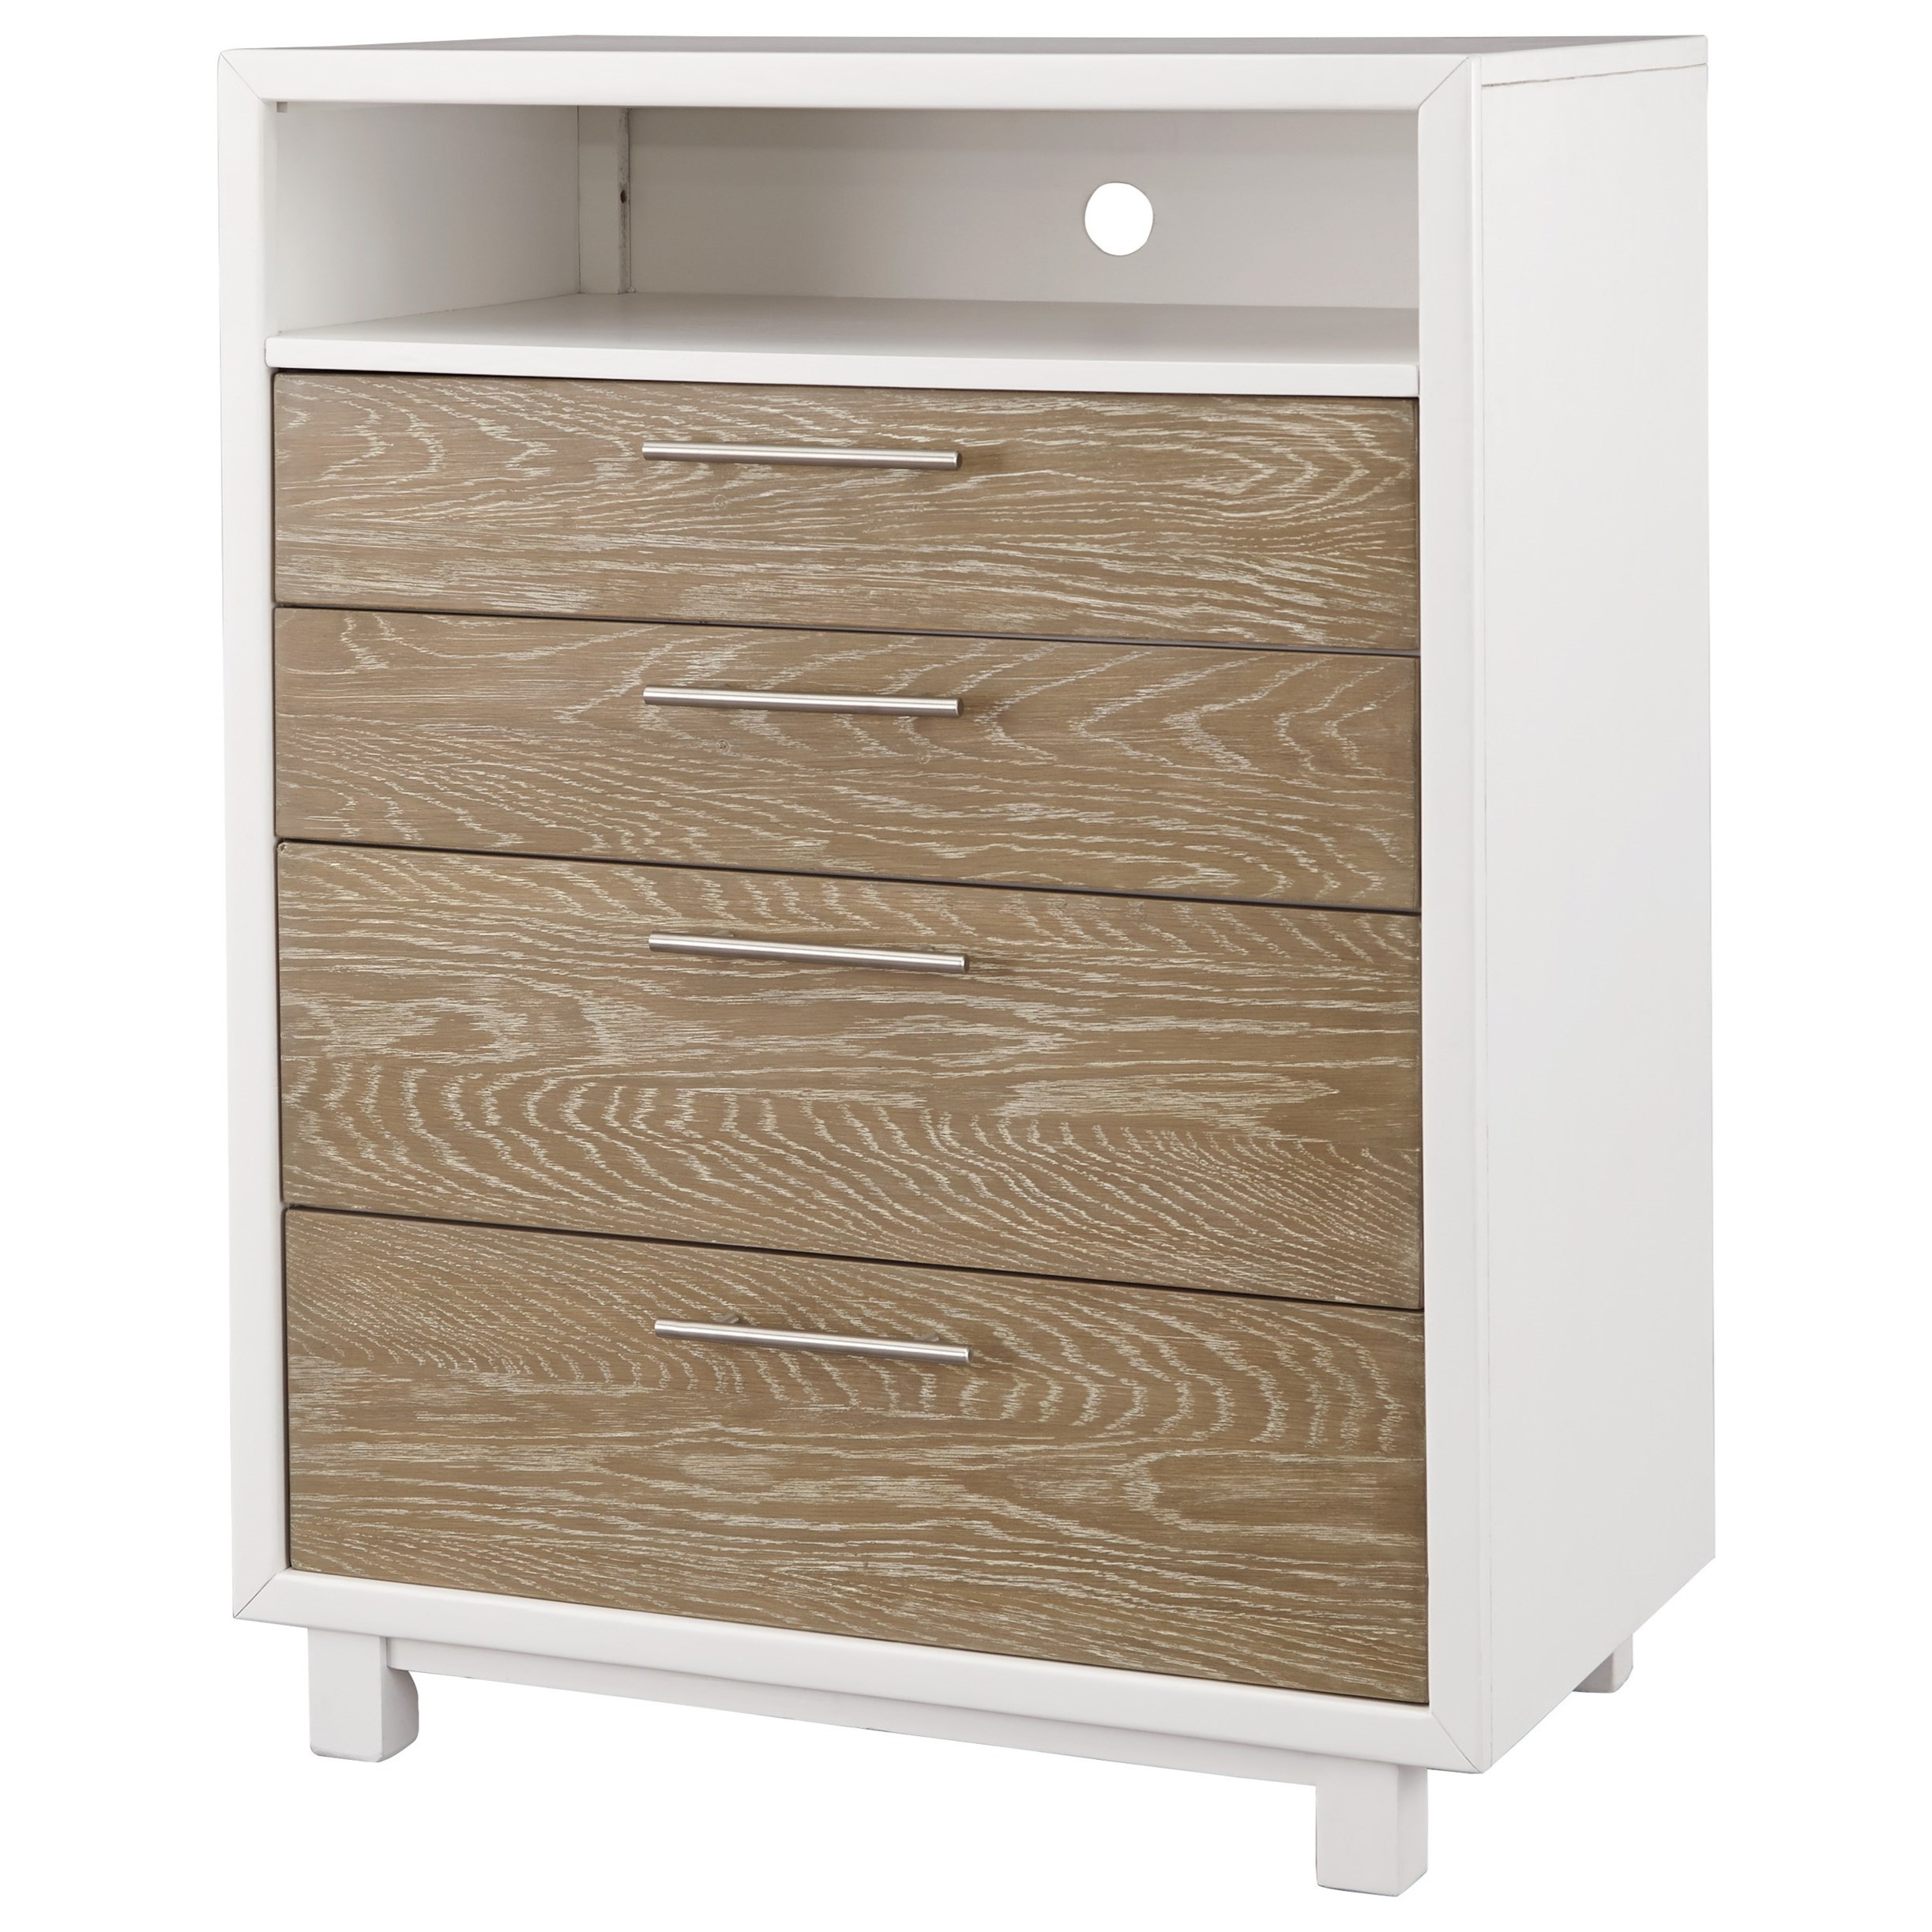 Signature Design by Ashley Gardomi 4 Drawer Chest - Item Number: B632-38